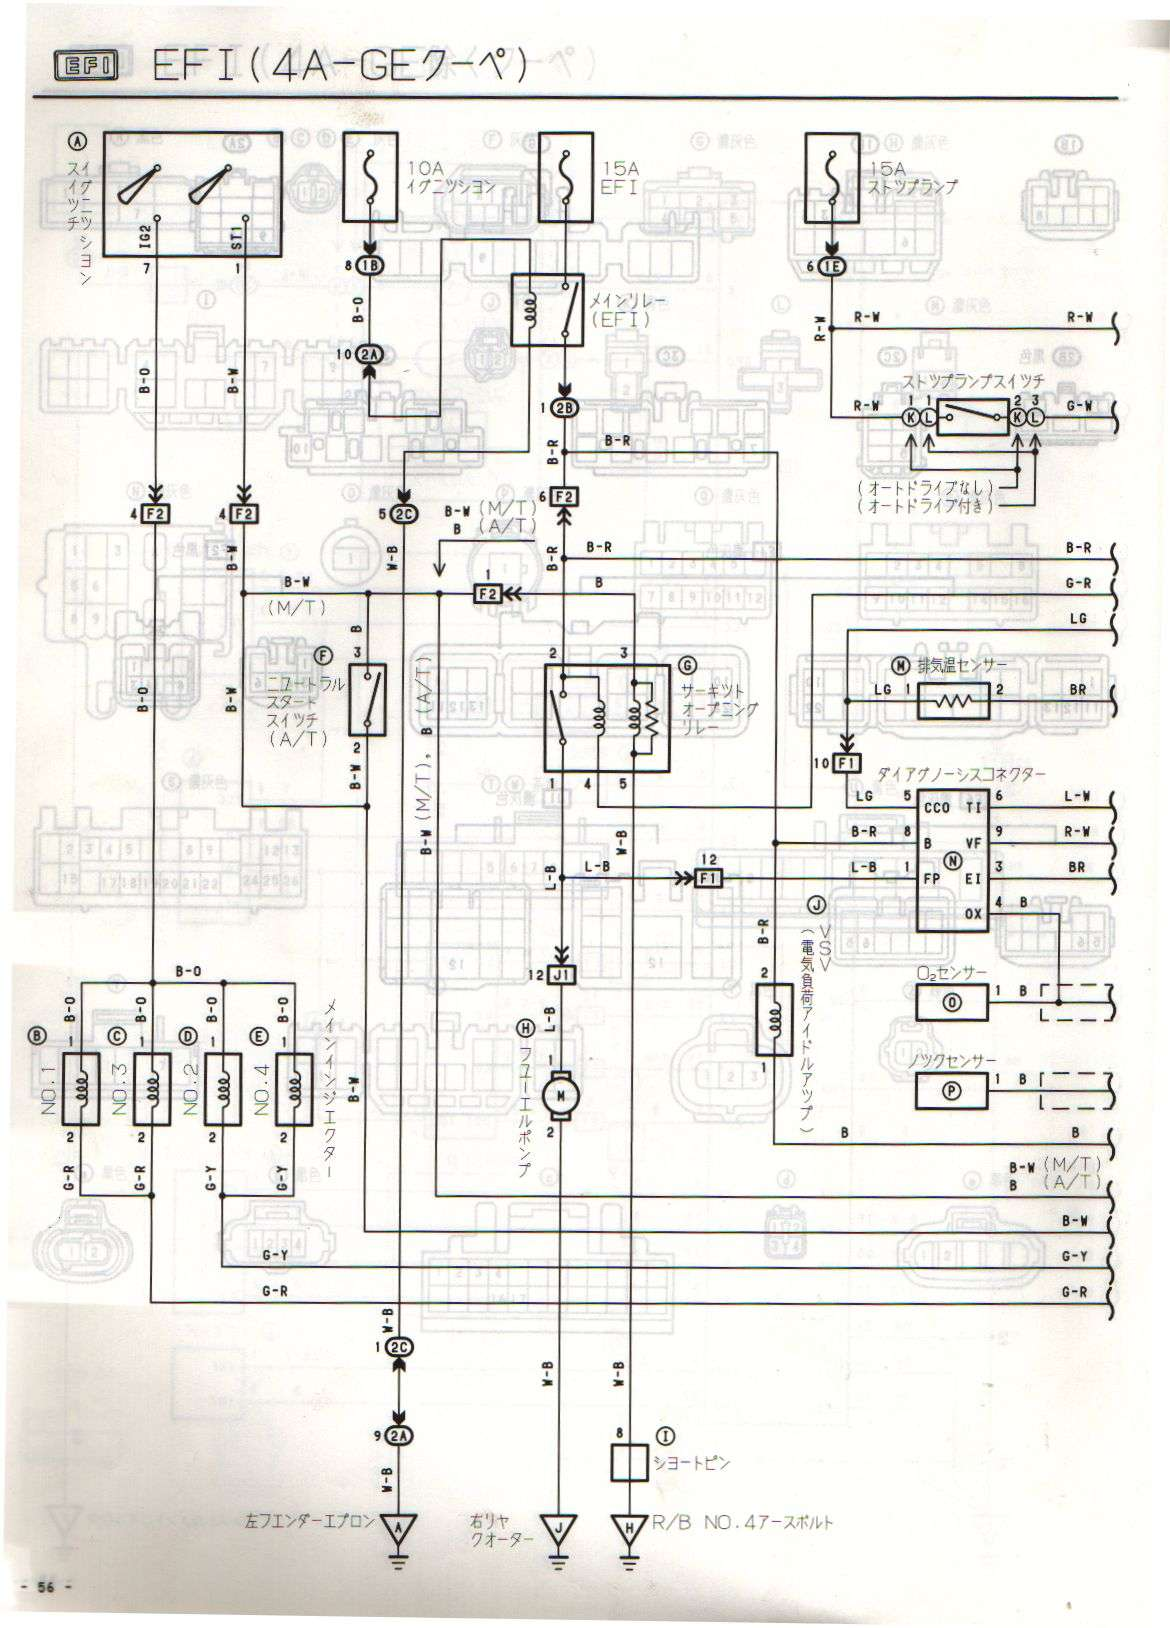 jdm ae86 wiring diagram the context level data flow depicts toyota ooh latest corolla info n pic keretalama